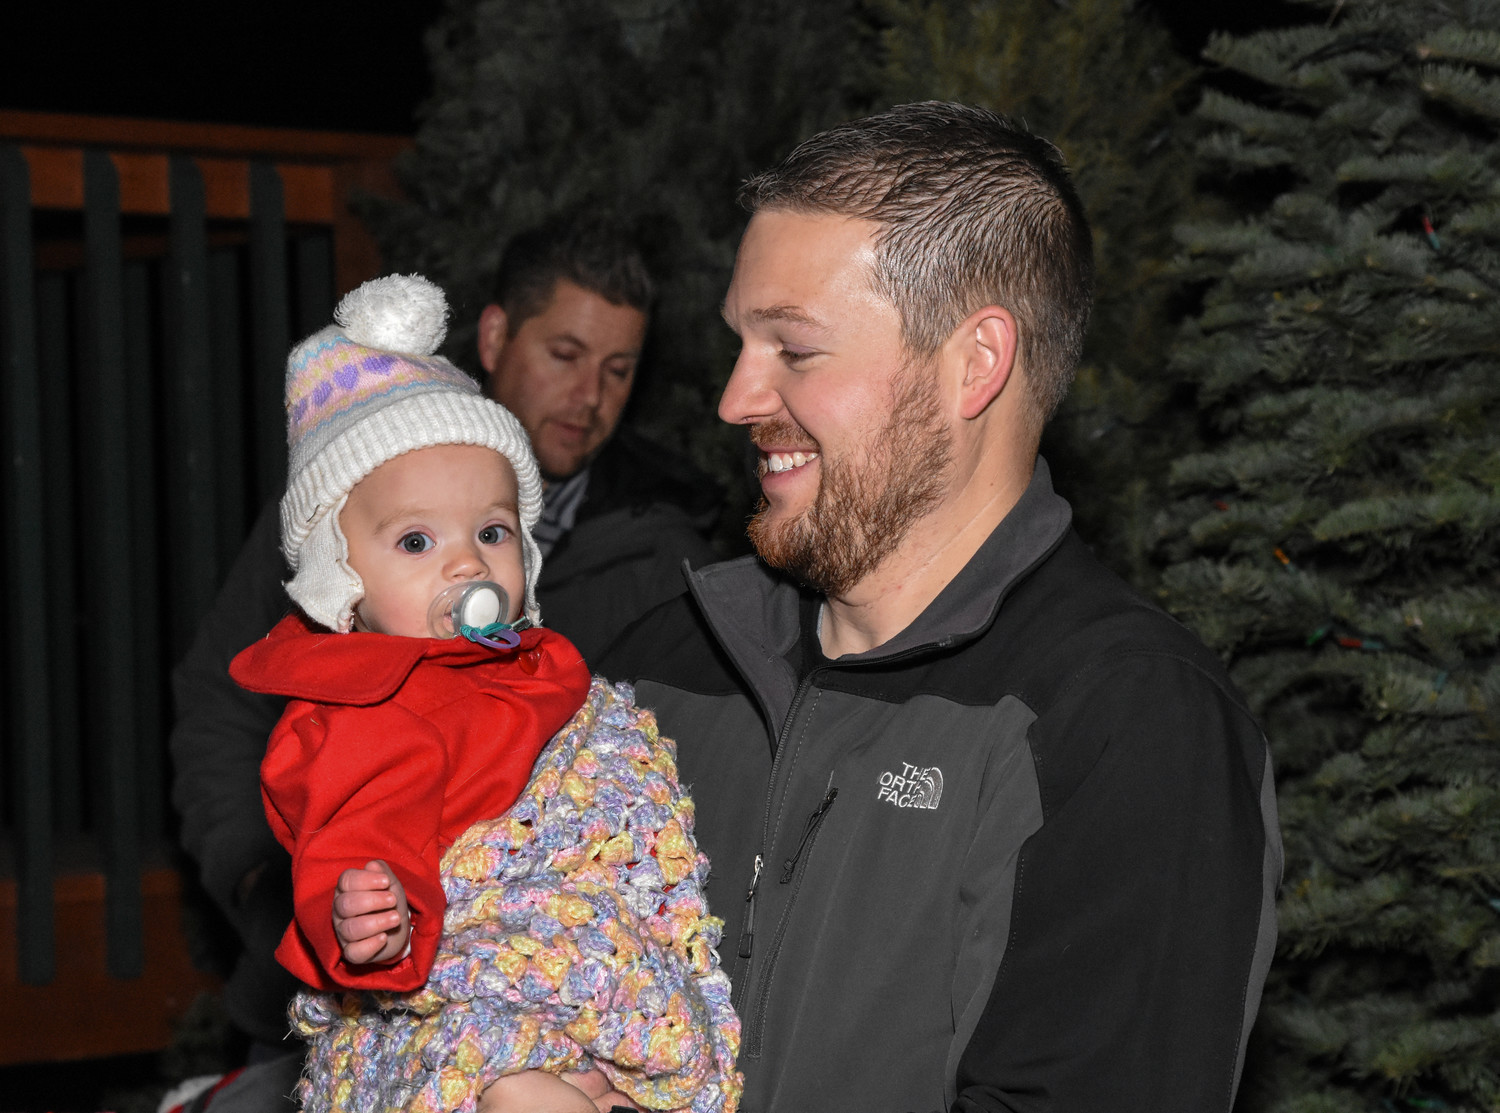 Curtis Kelly, right, and daughter Alexis, 1, of Brighton, await their turn to see Santa Claus at this year's Thornton WinterFest, Friday, Dec. 8 at Carpenter Park.